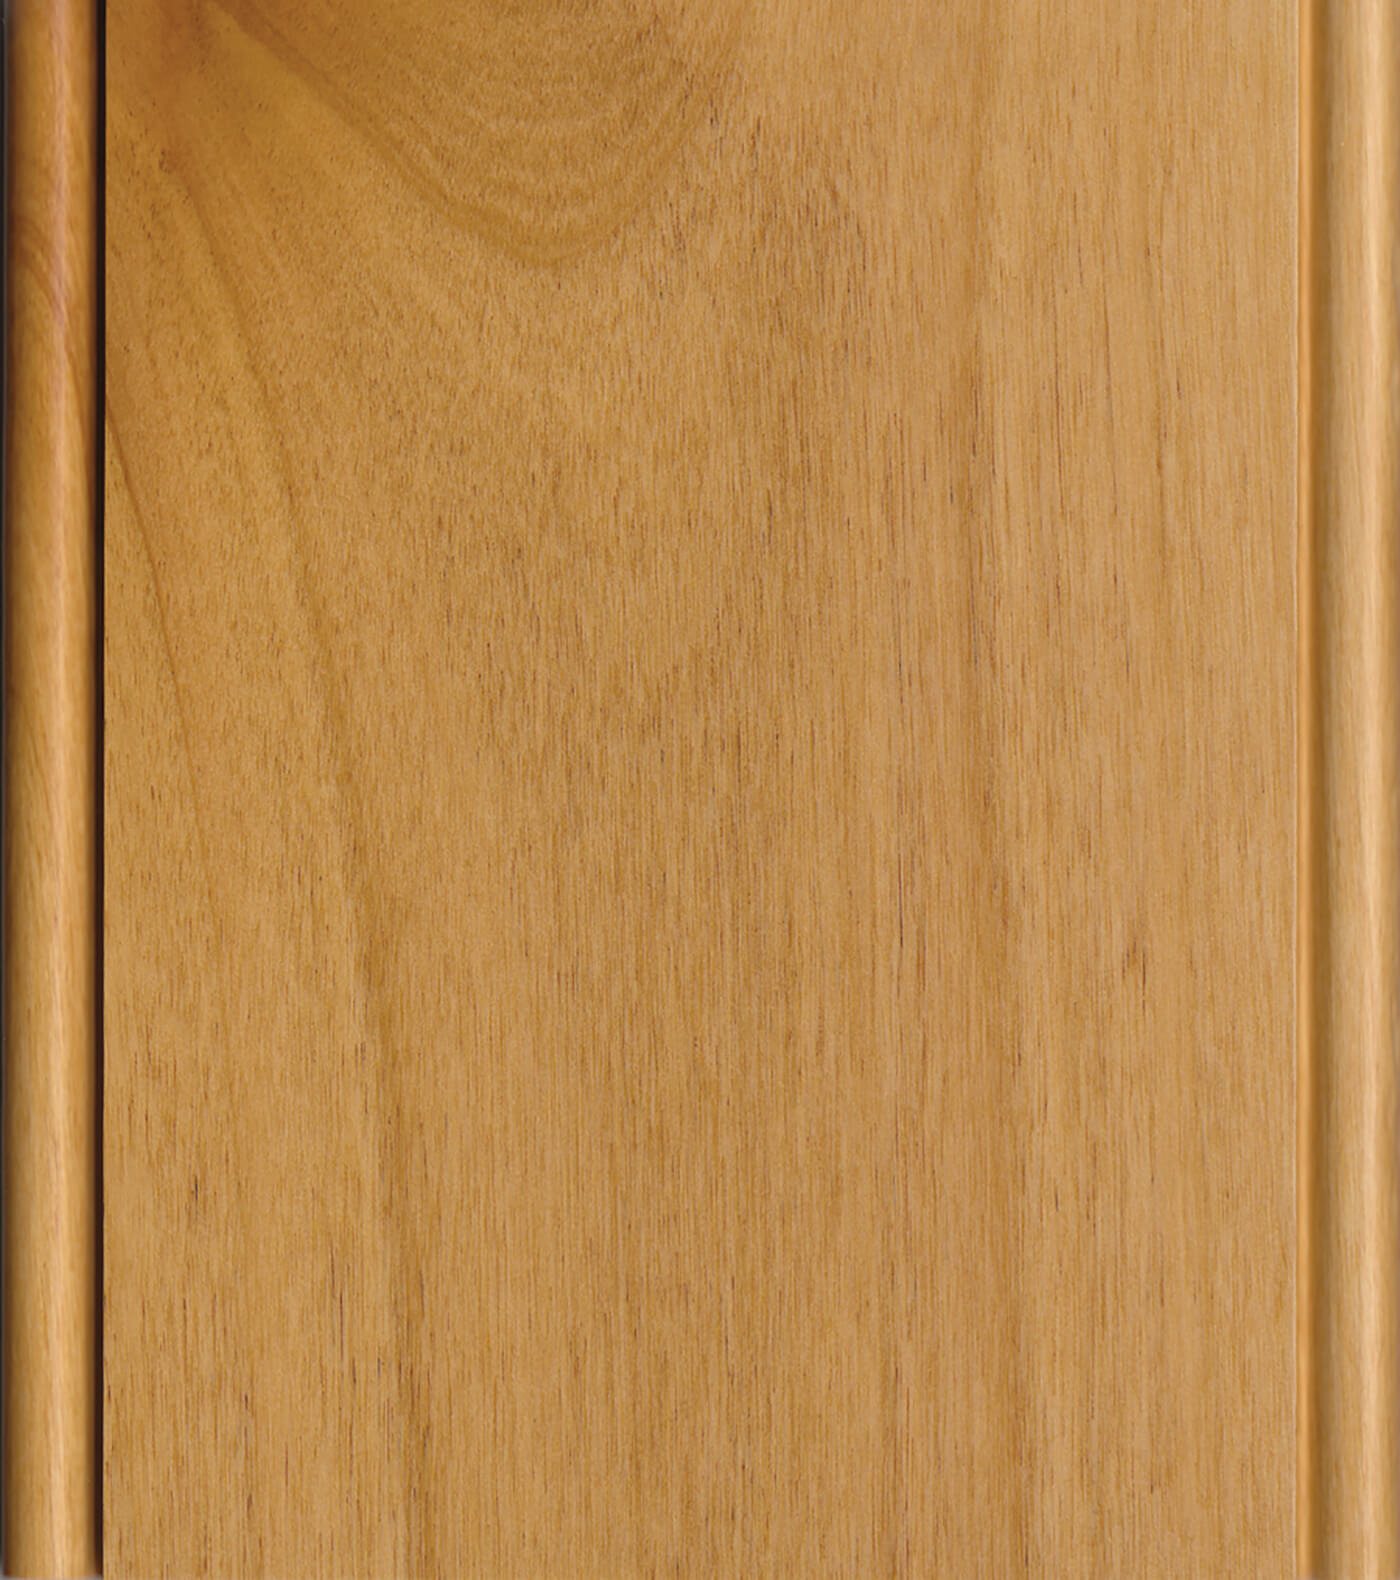 Natural Finish on Knotty Alder